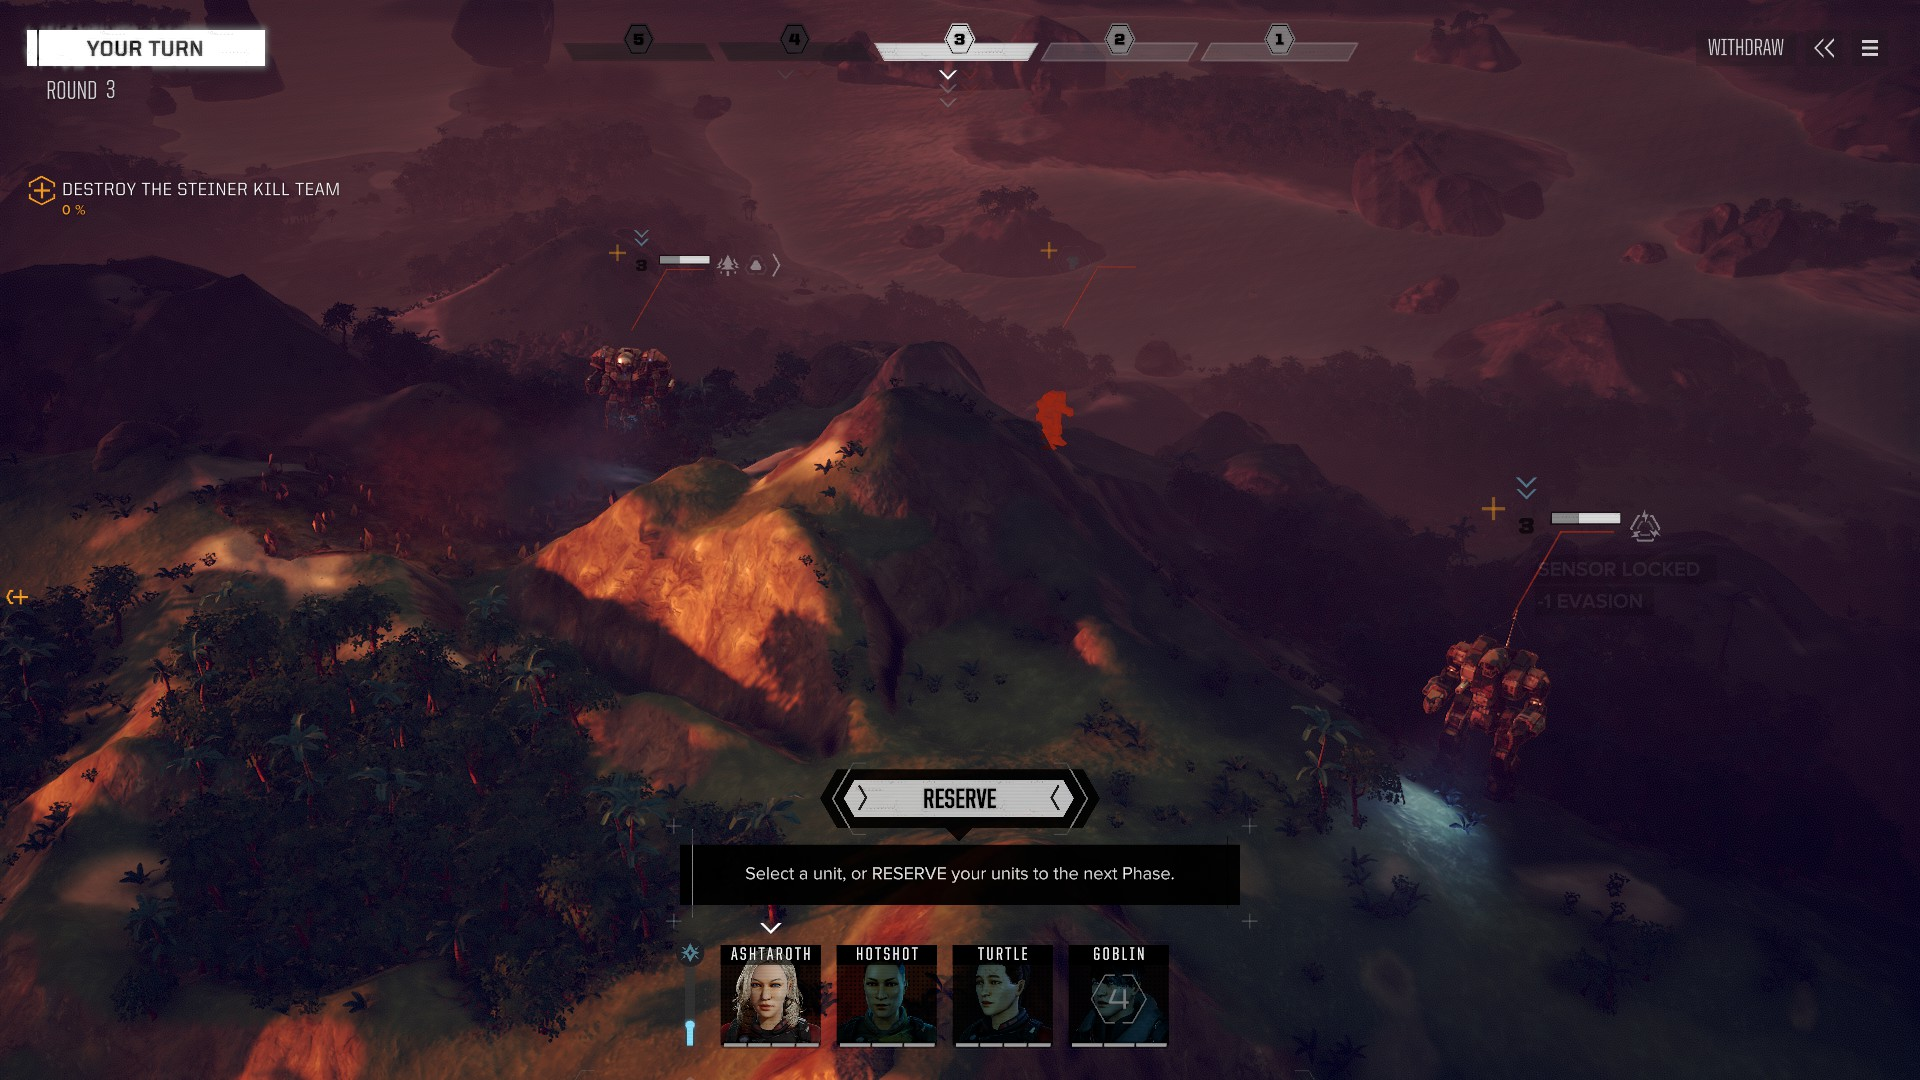 Battletech - Urban Warcrimes: Releases June 4th - The